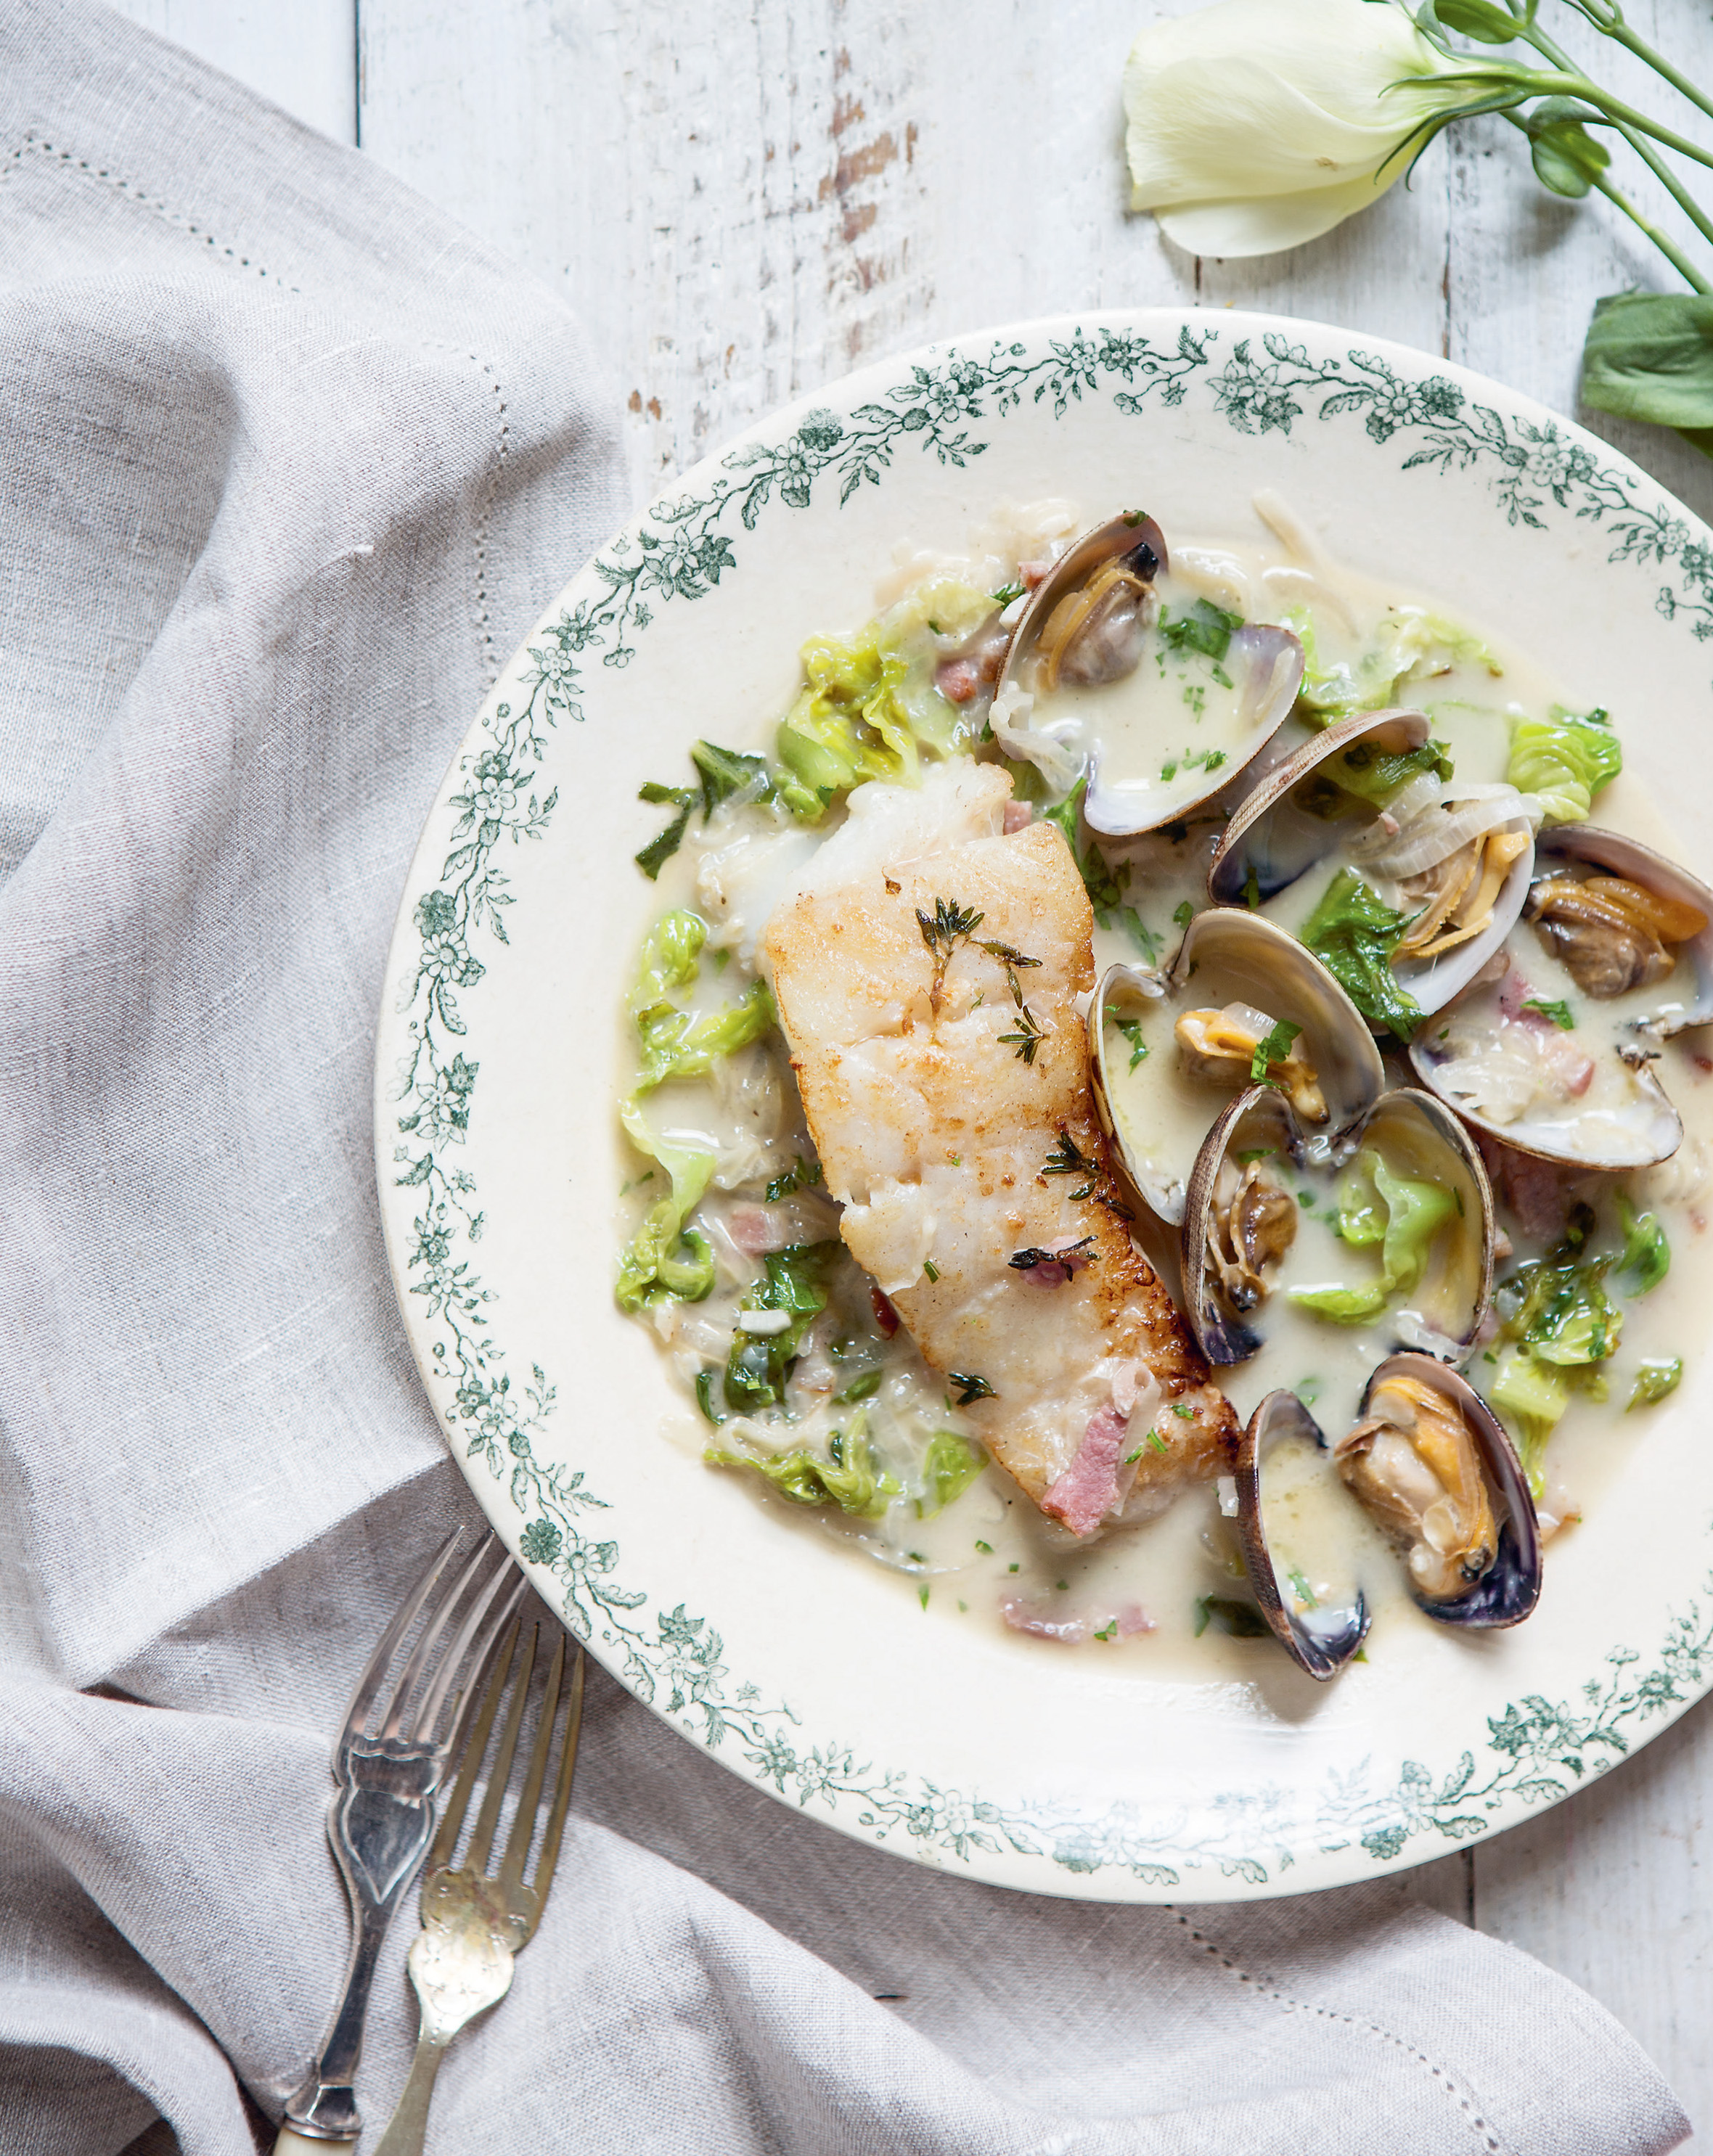 Pan-roasted pollock with lettuce, bacon + clams